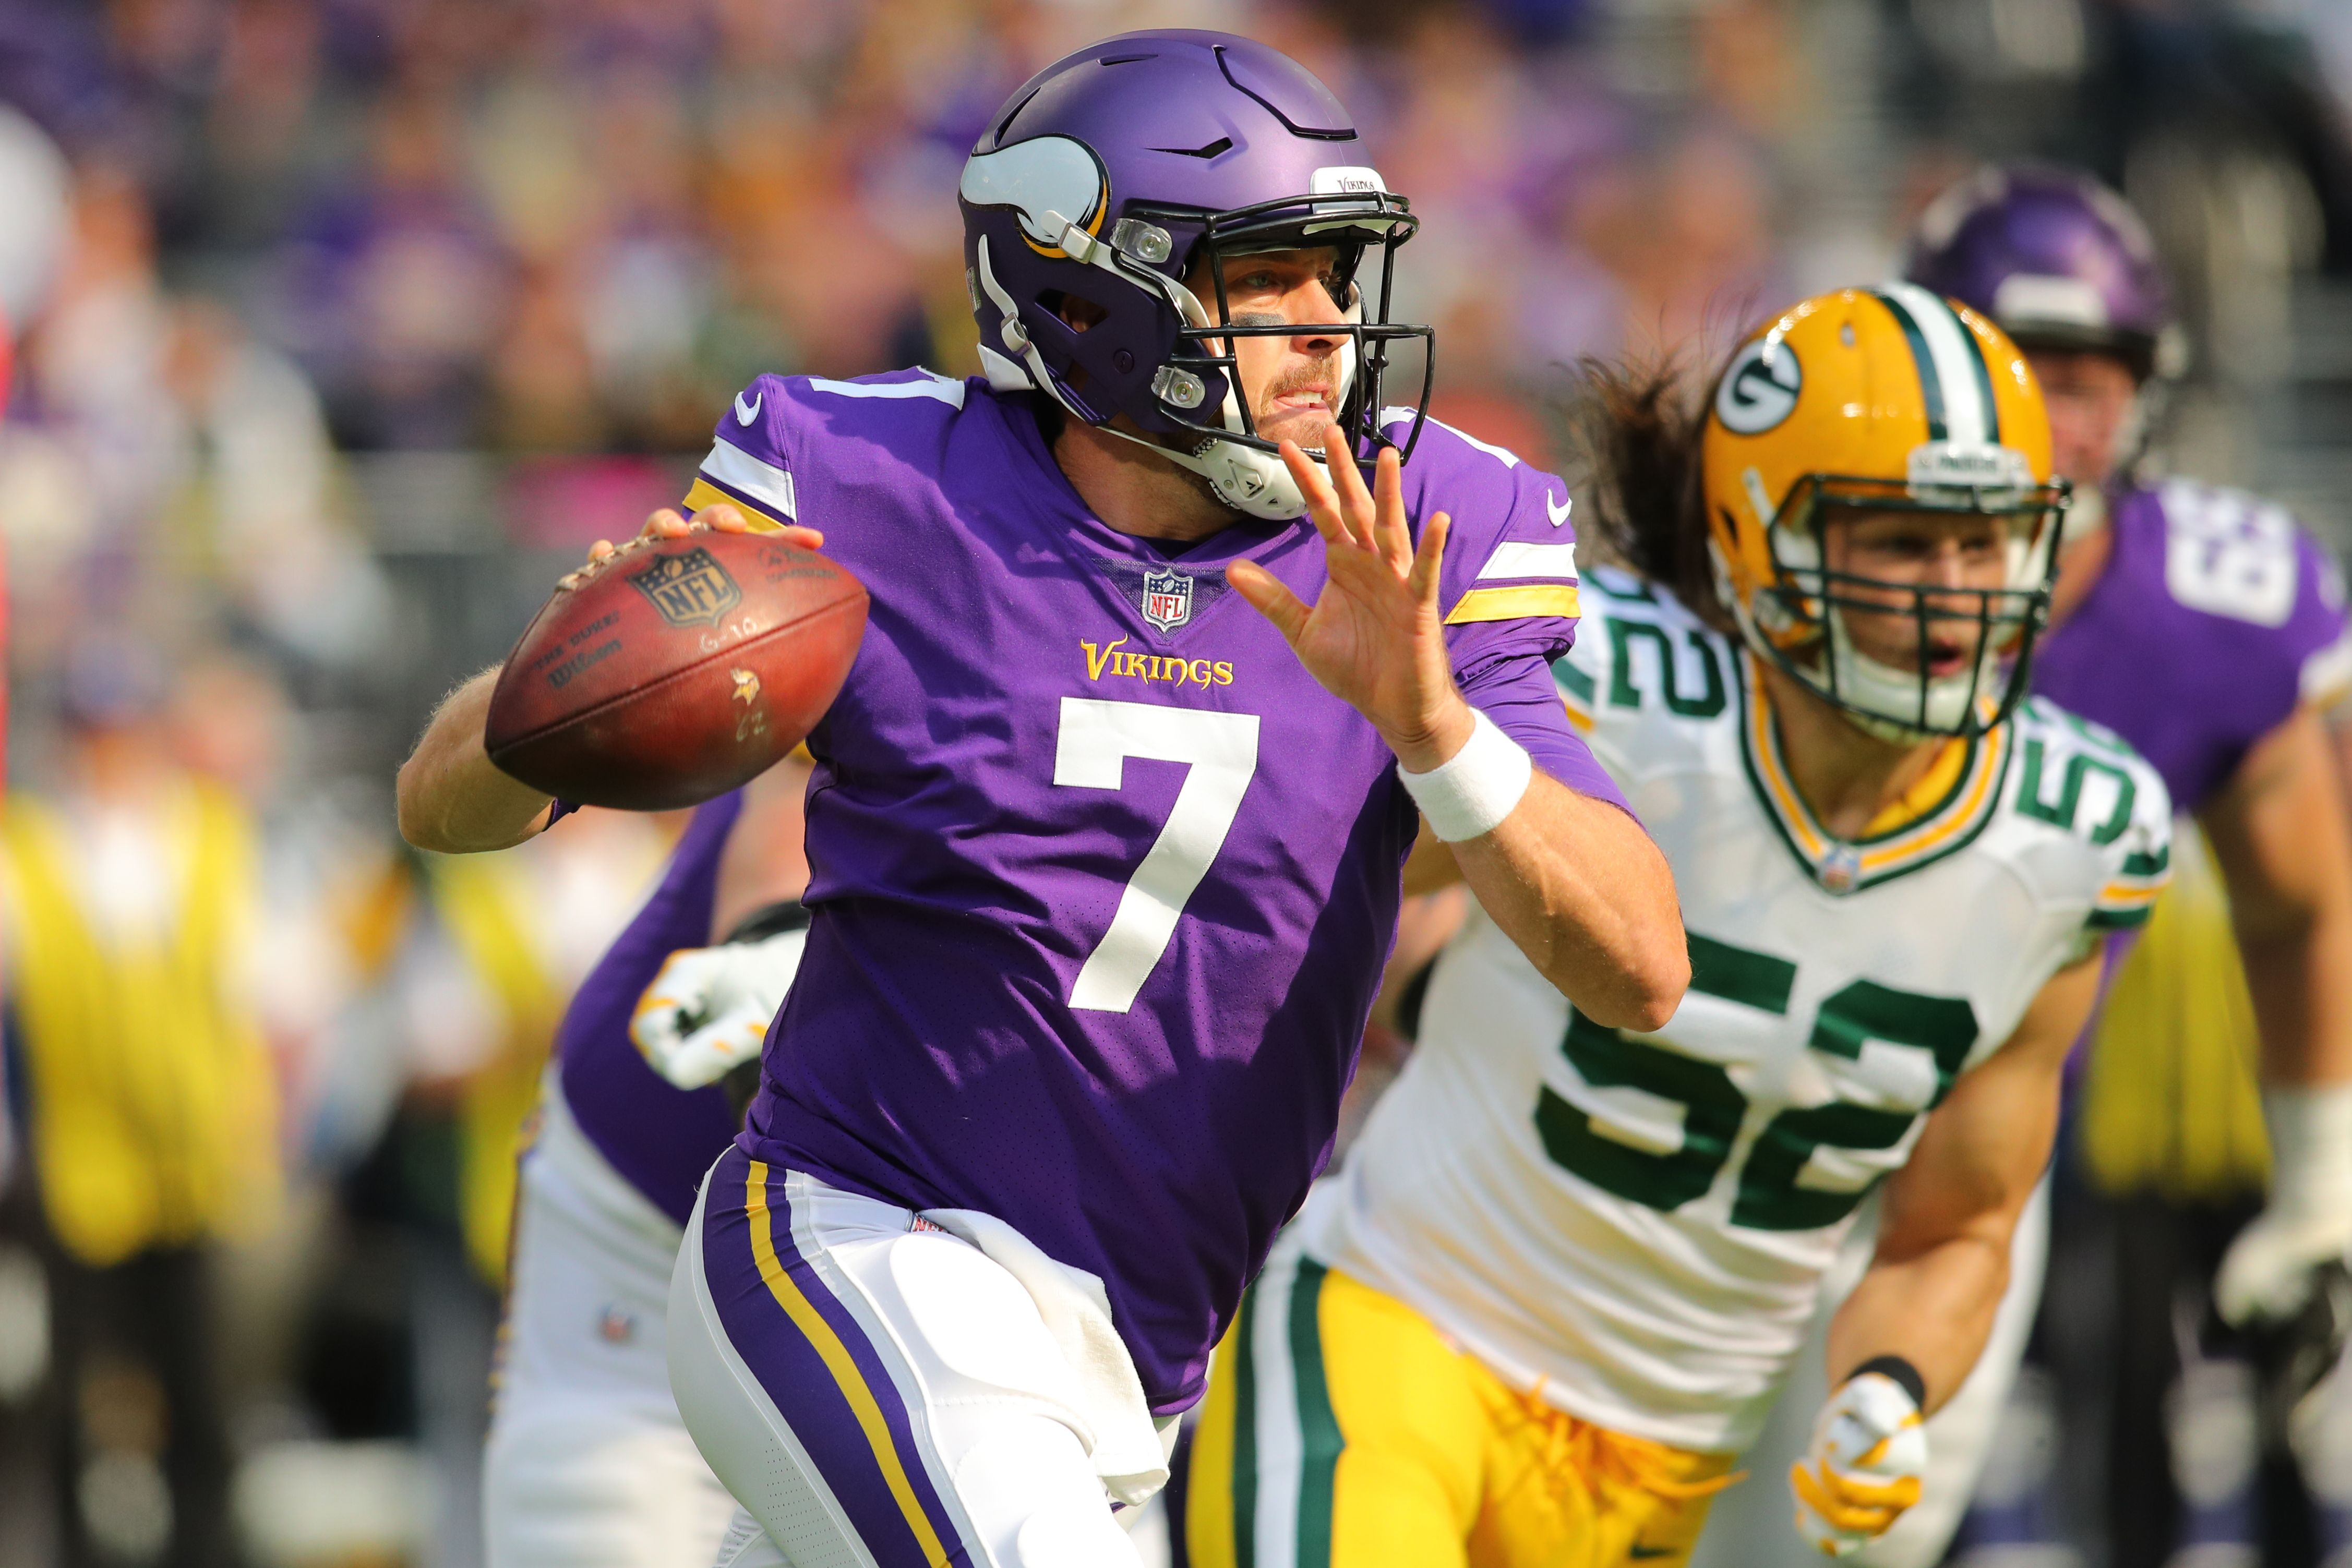 Schmidt's Week 6 game grades: Minnesota Vikings vs. Green Bay Packers